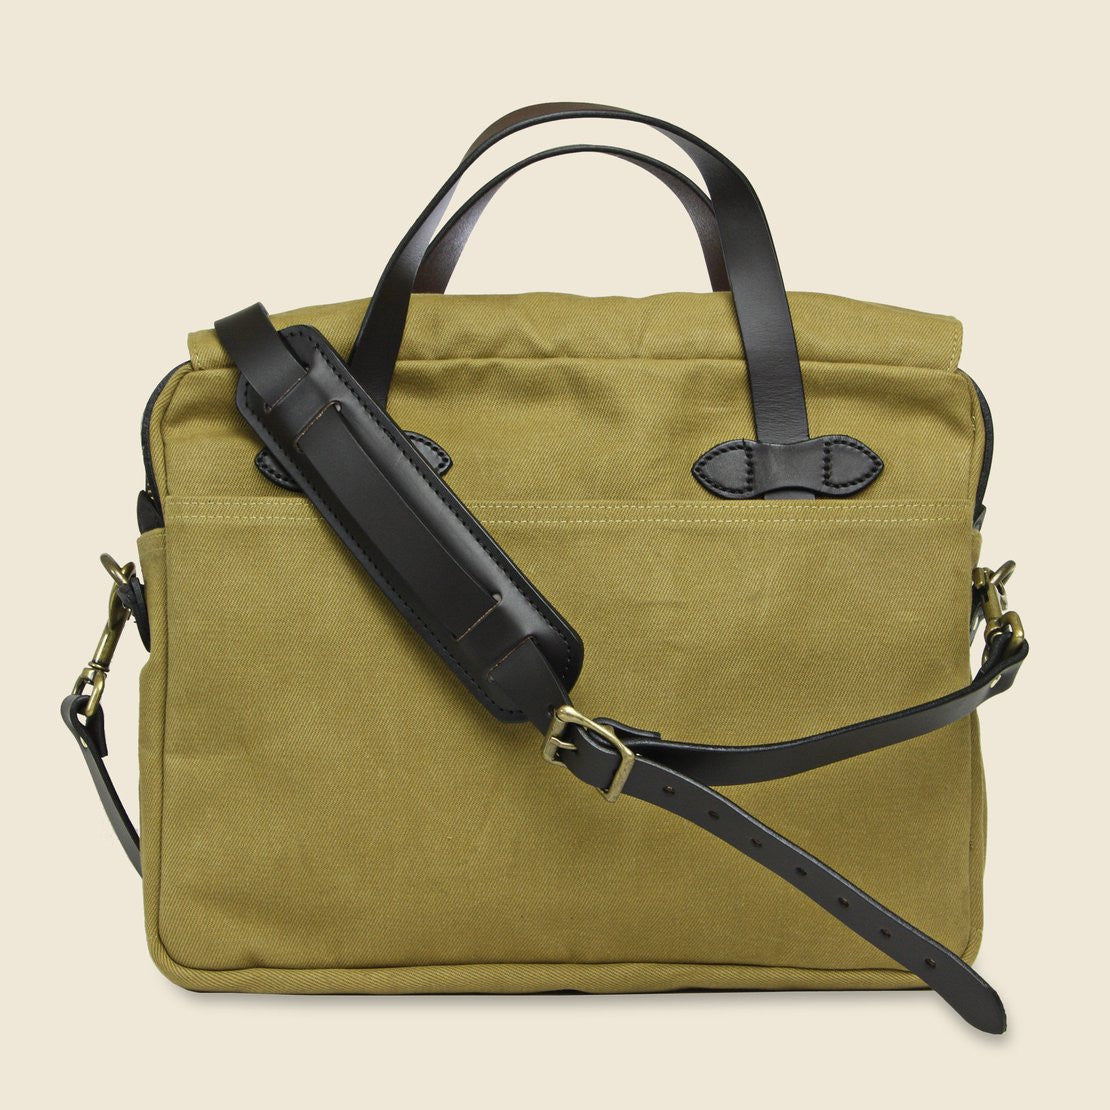 Original Briefcase - Tan - Filson - STAG Provisions - Accessories - Bags / Luggage